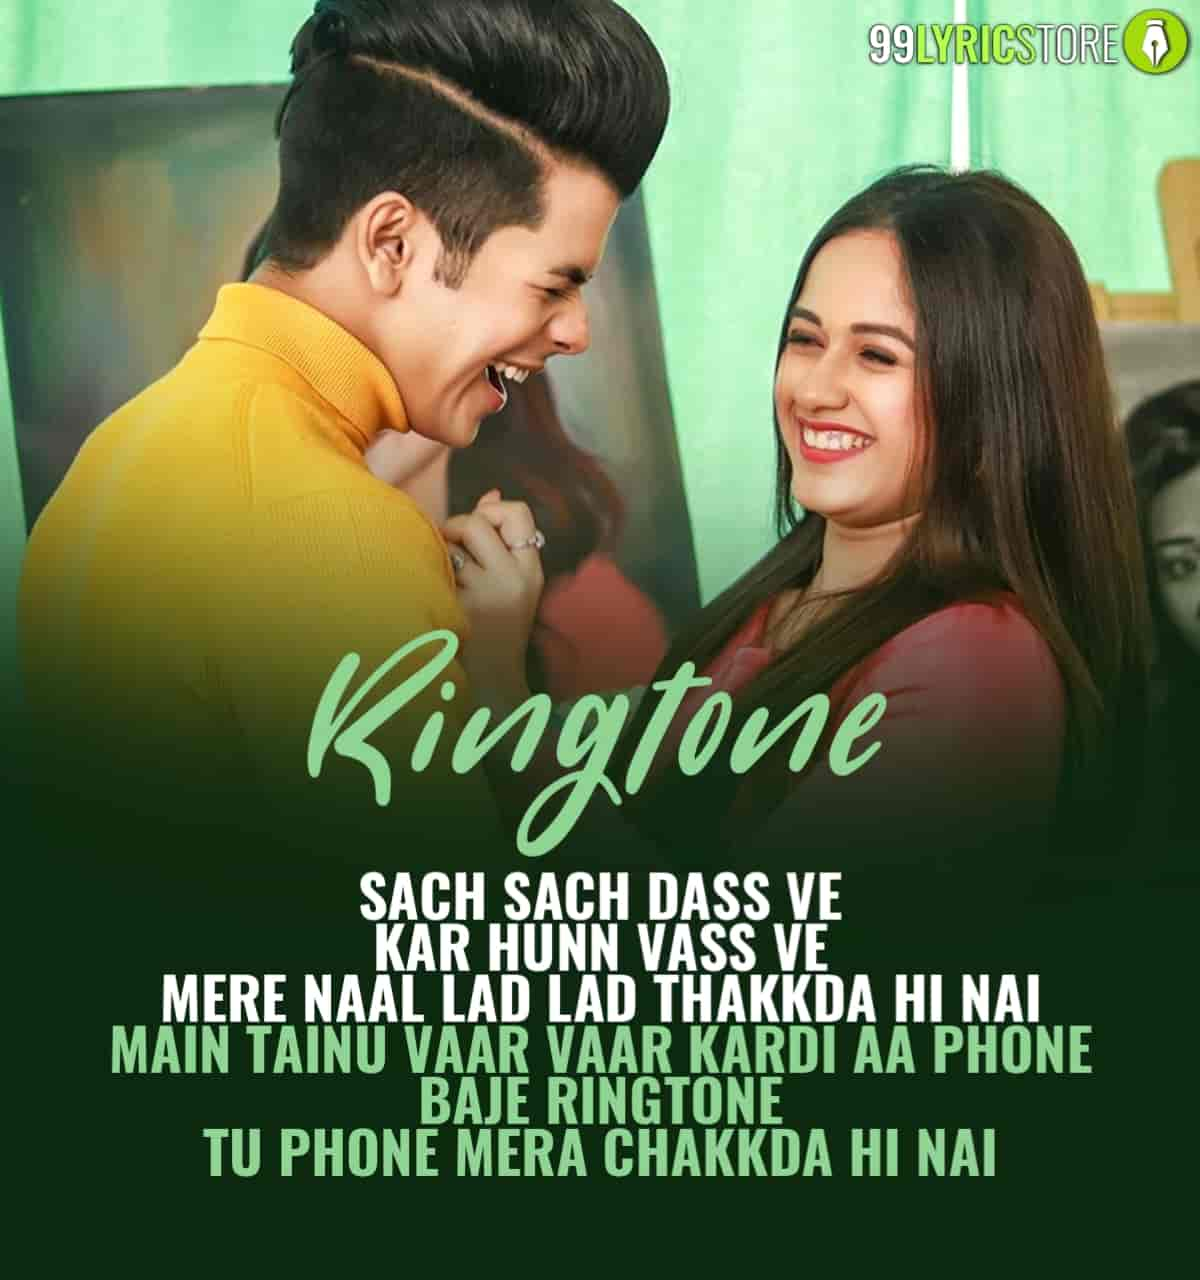 Ringtone Punjabi Song Image Features Jannat Zubair and Siddharth Nigam